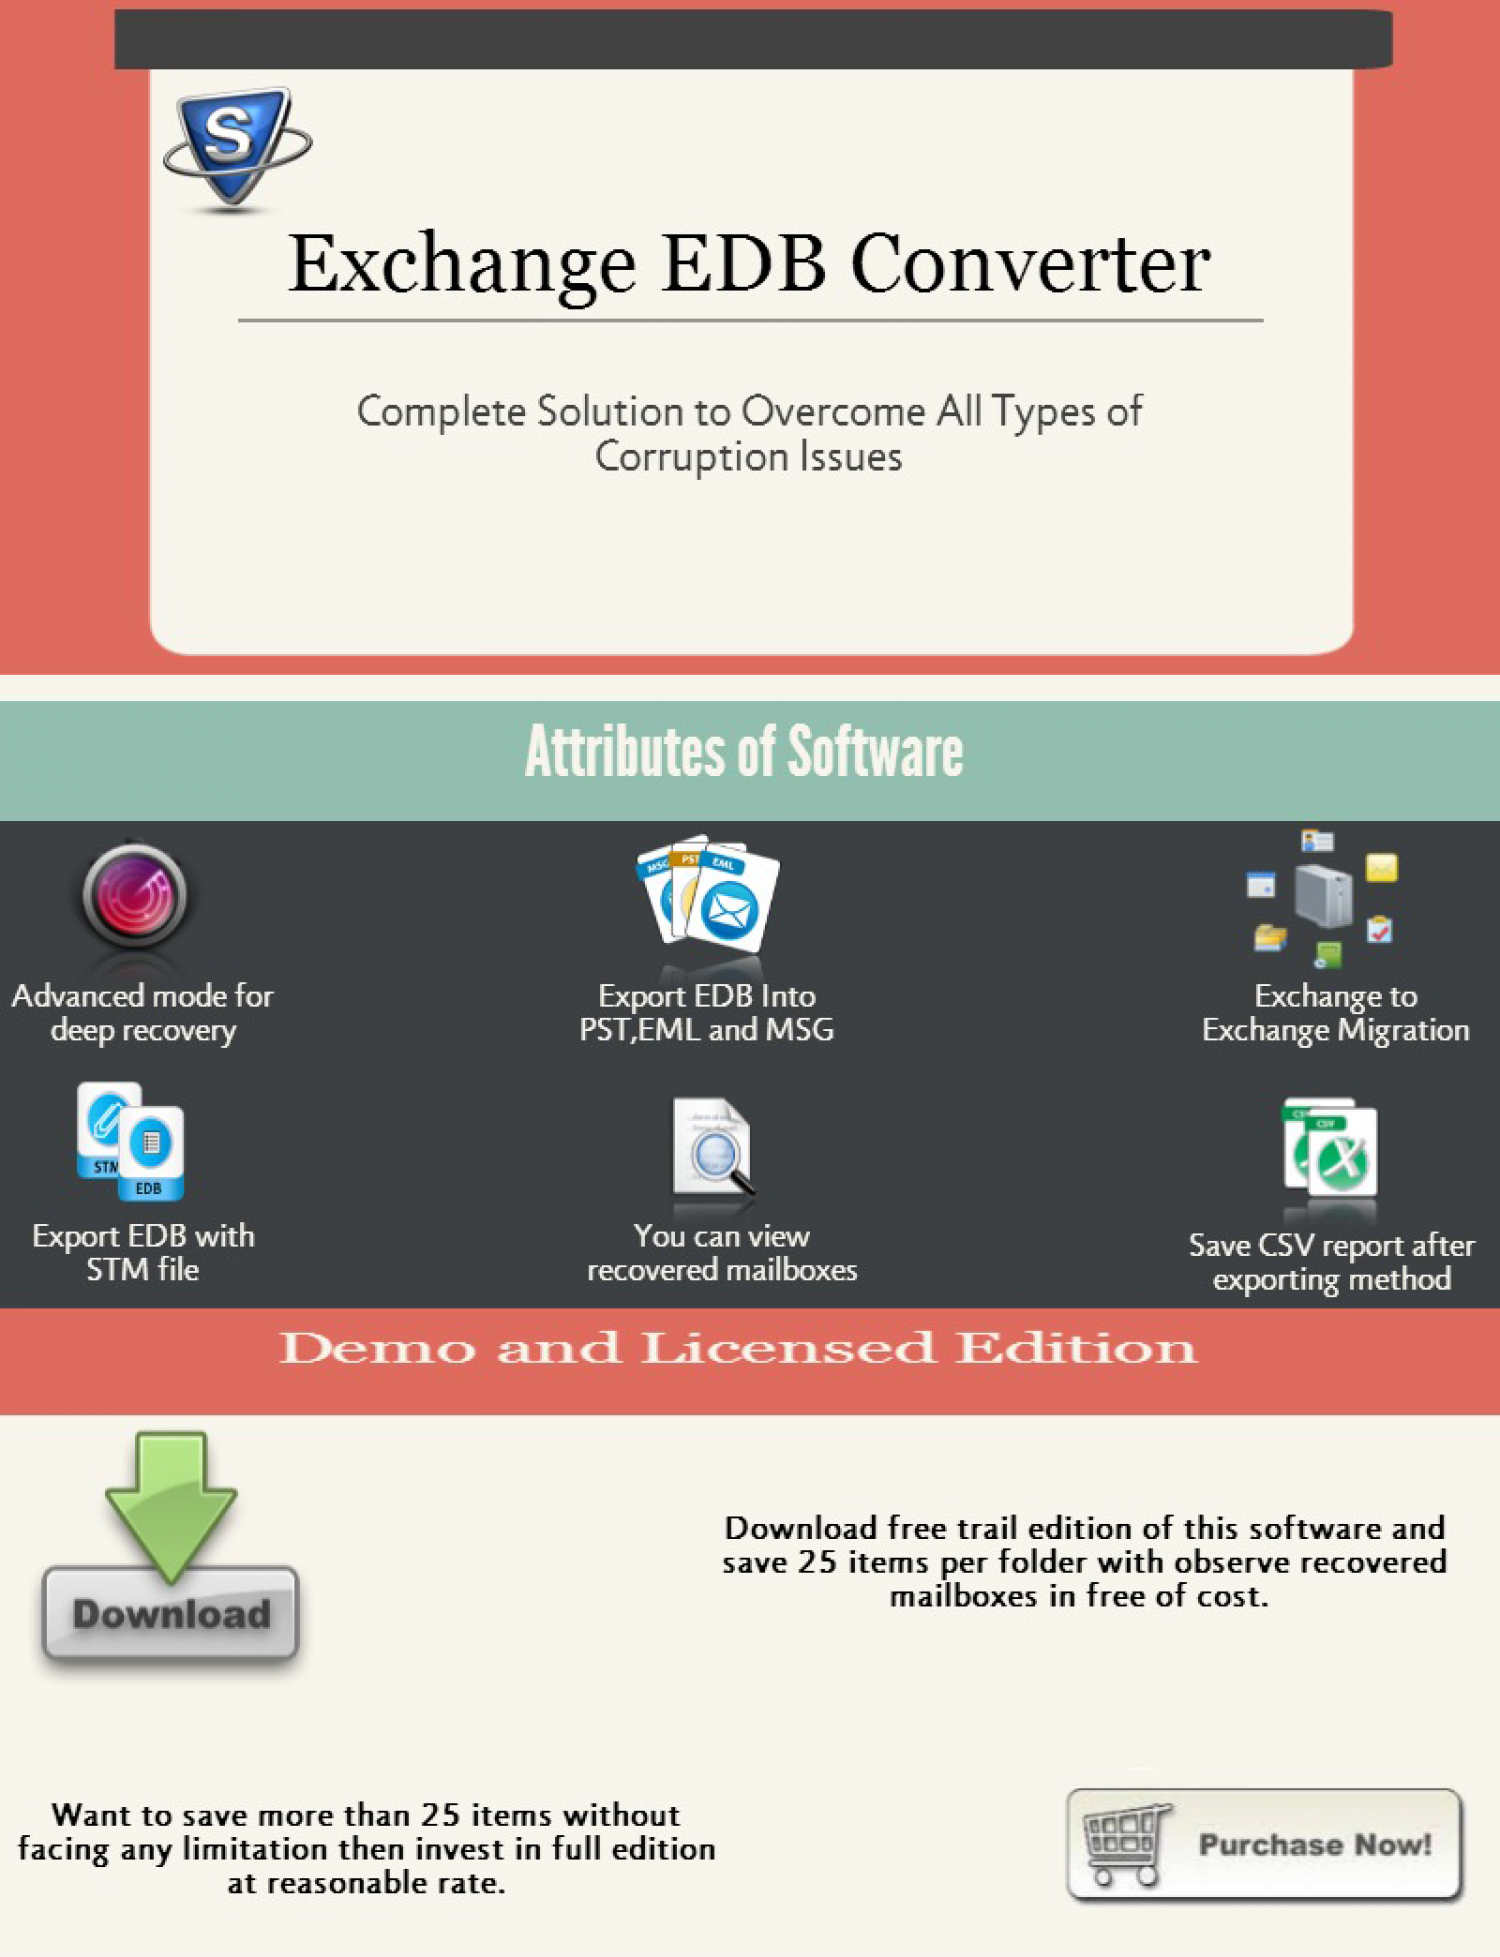 Exchange EDB Converter Infographic